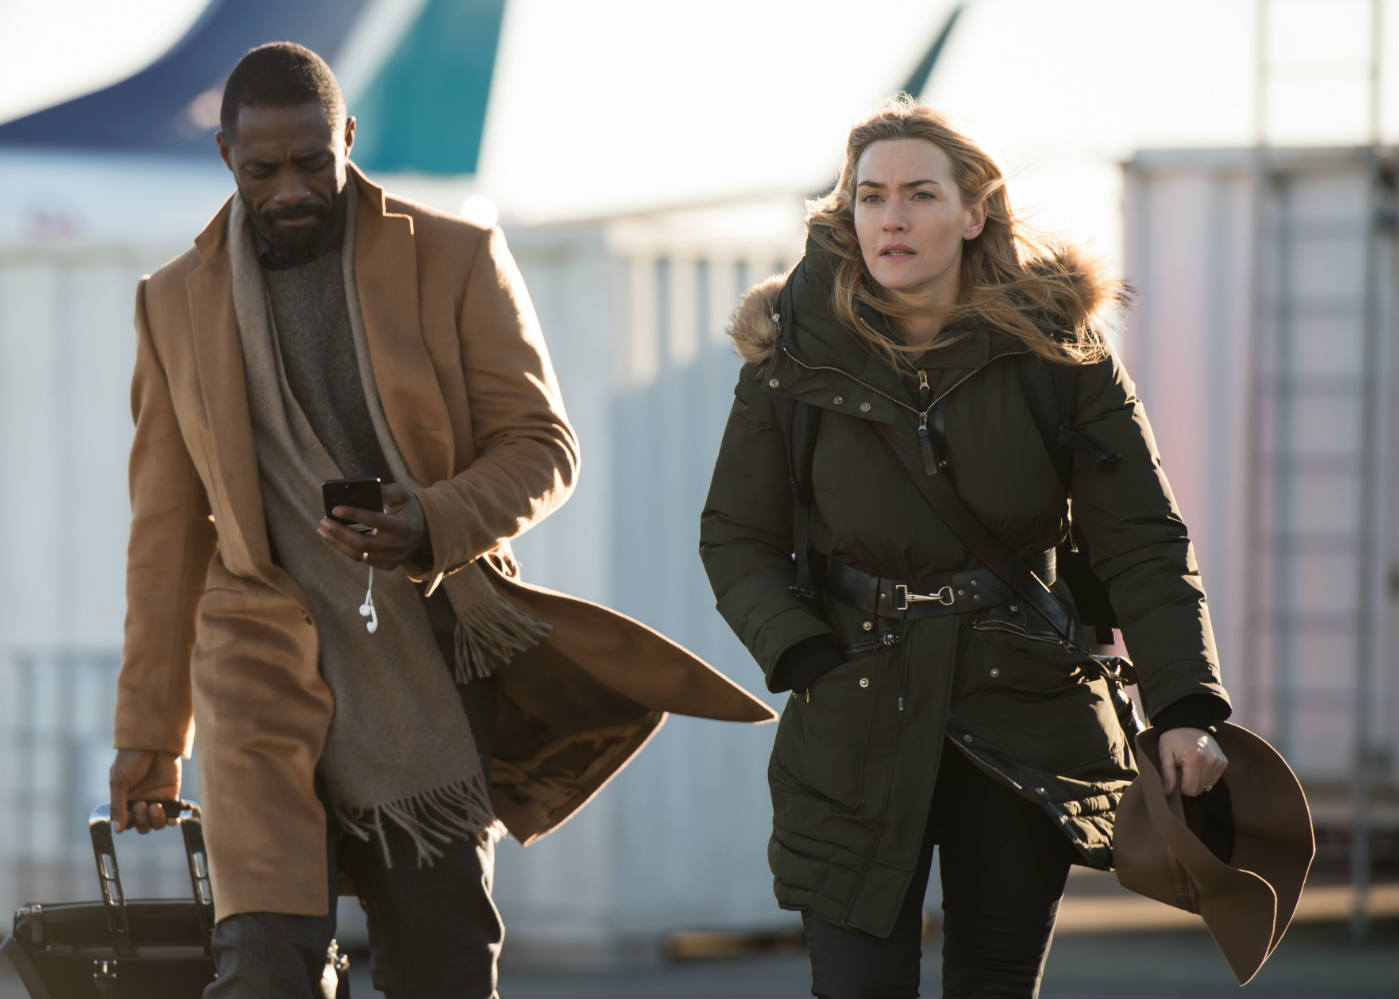 The Mountain Between Us Trailer: Kate Winslet and Idris Elba Must Rely on Each Other